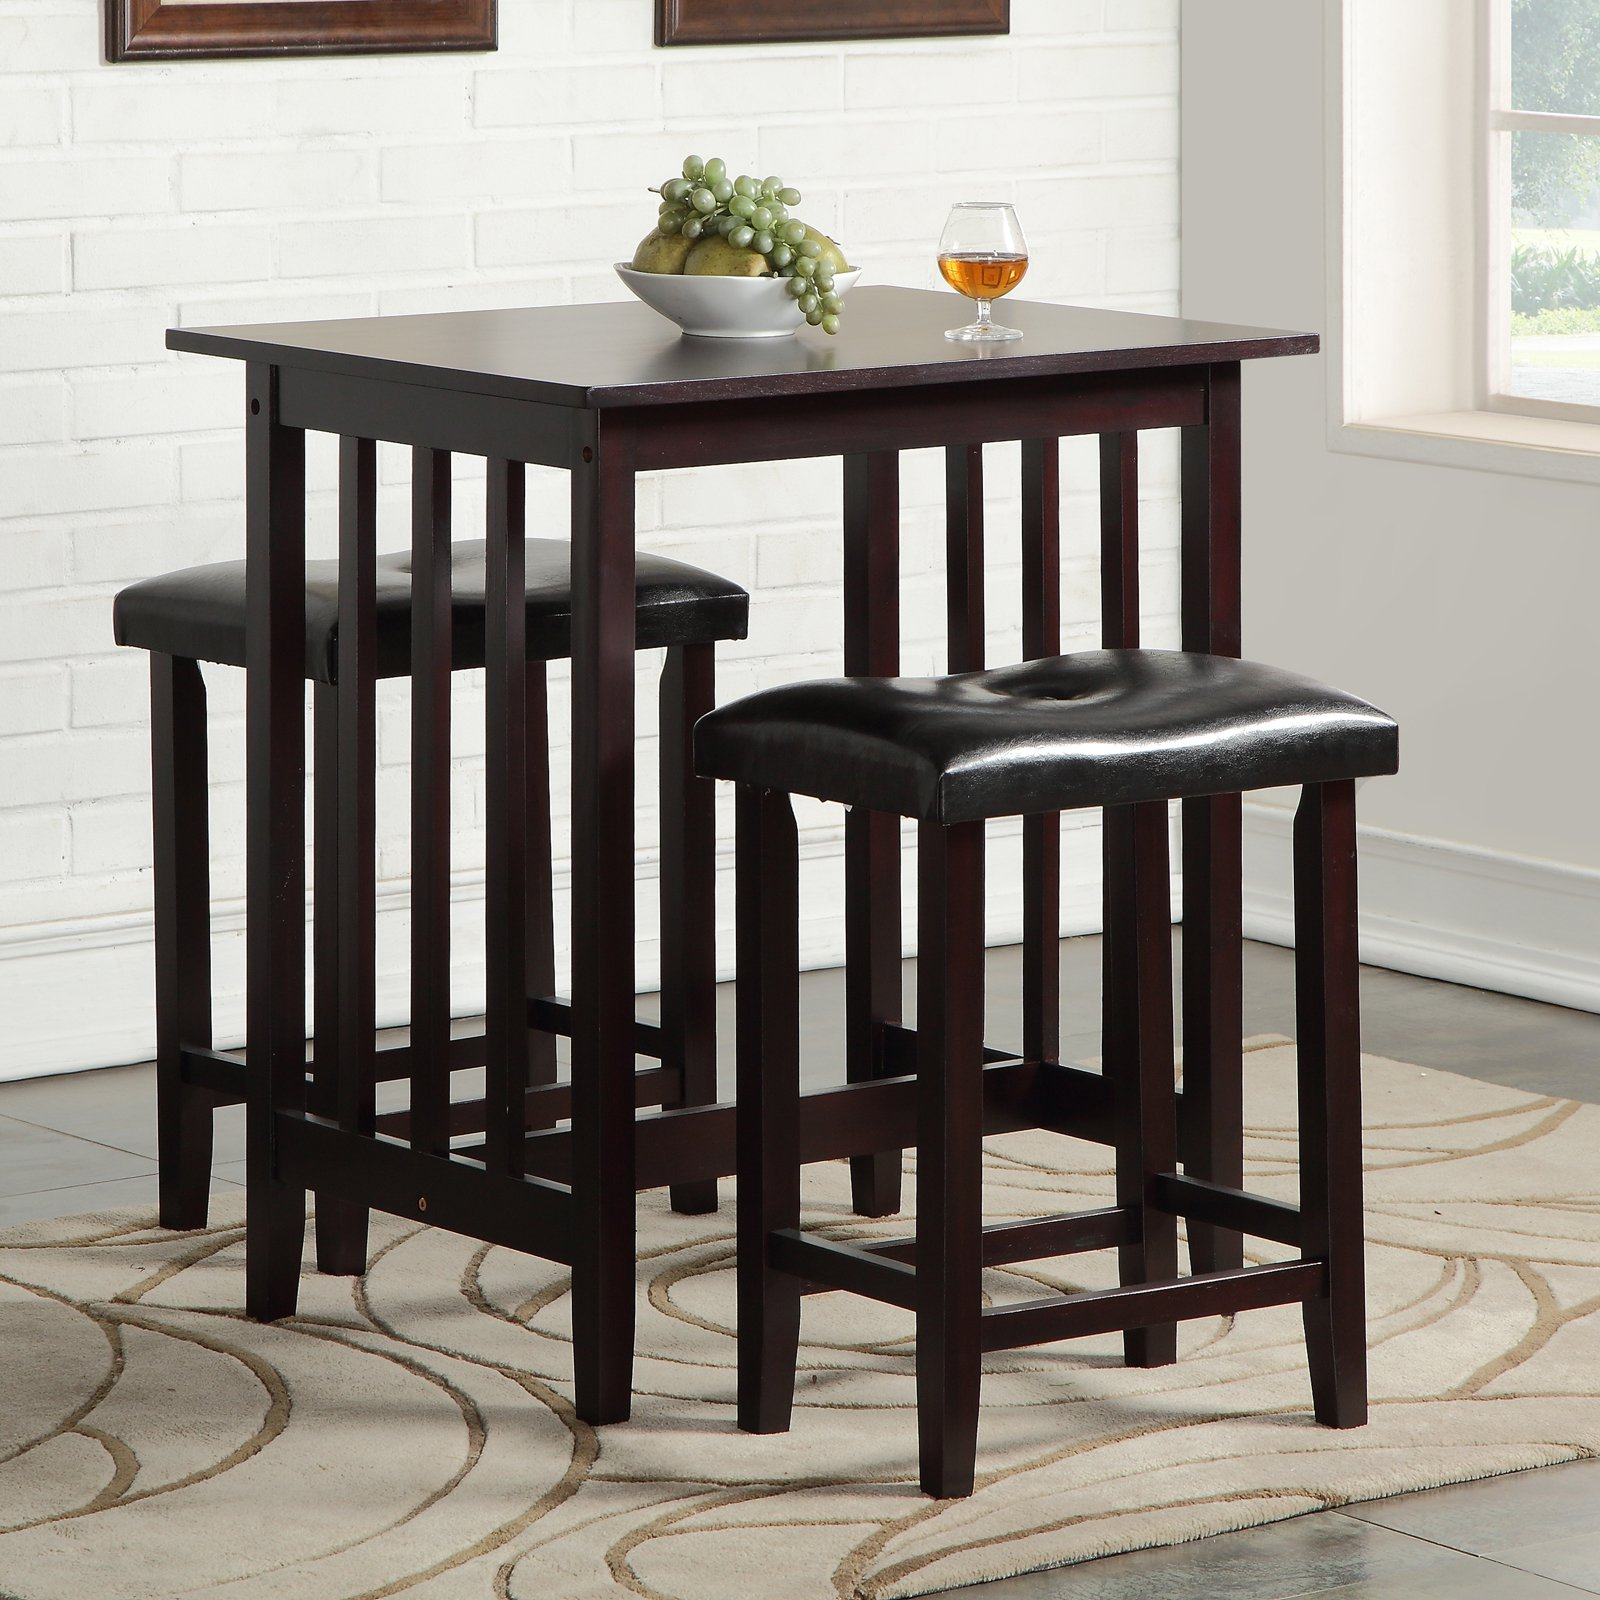 Hood Canal 3 Piece Dining Sets With 2019 Roundhill Furniture 3 Piece Counter Height Dining Table Set In 2019 (Gallery 7 of 25)